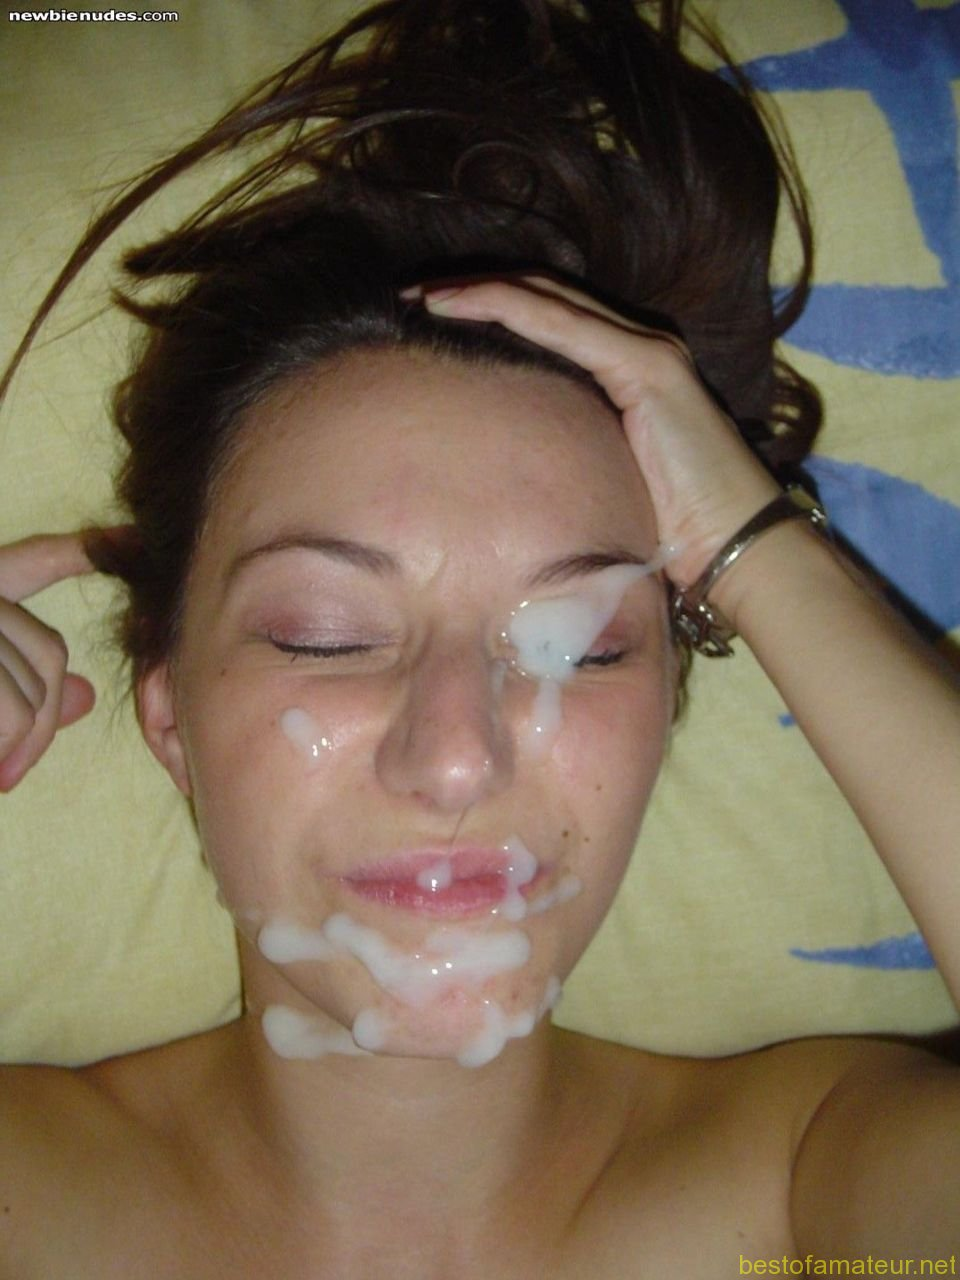 cum covered faces - Goopy Facial Cumshots - MOTHERLESS.COM